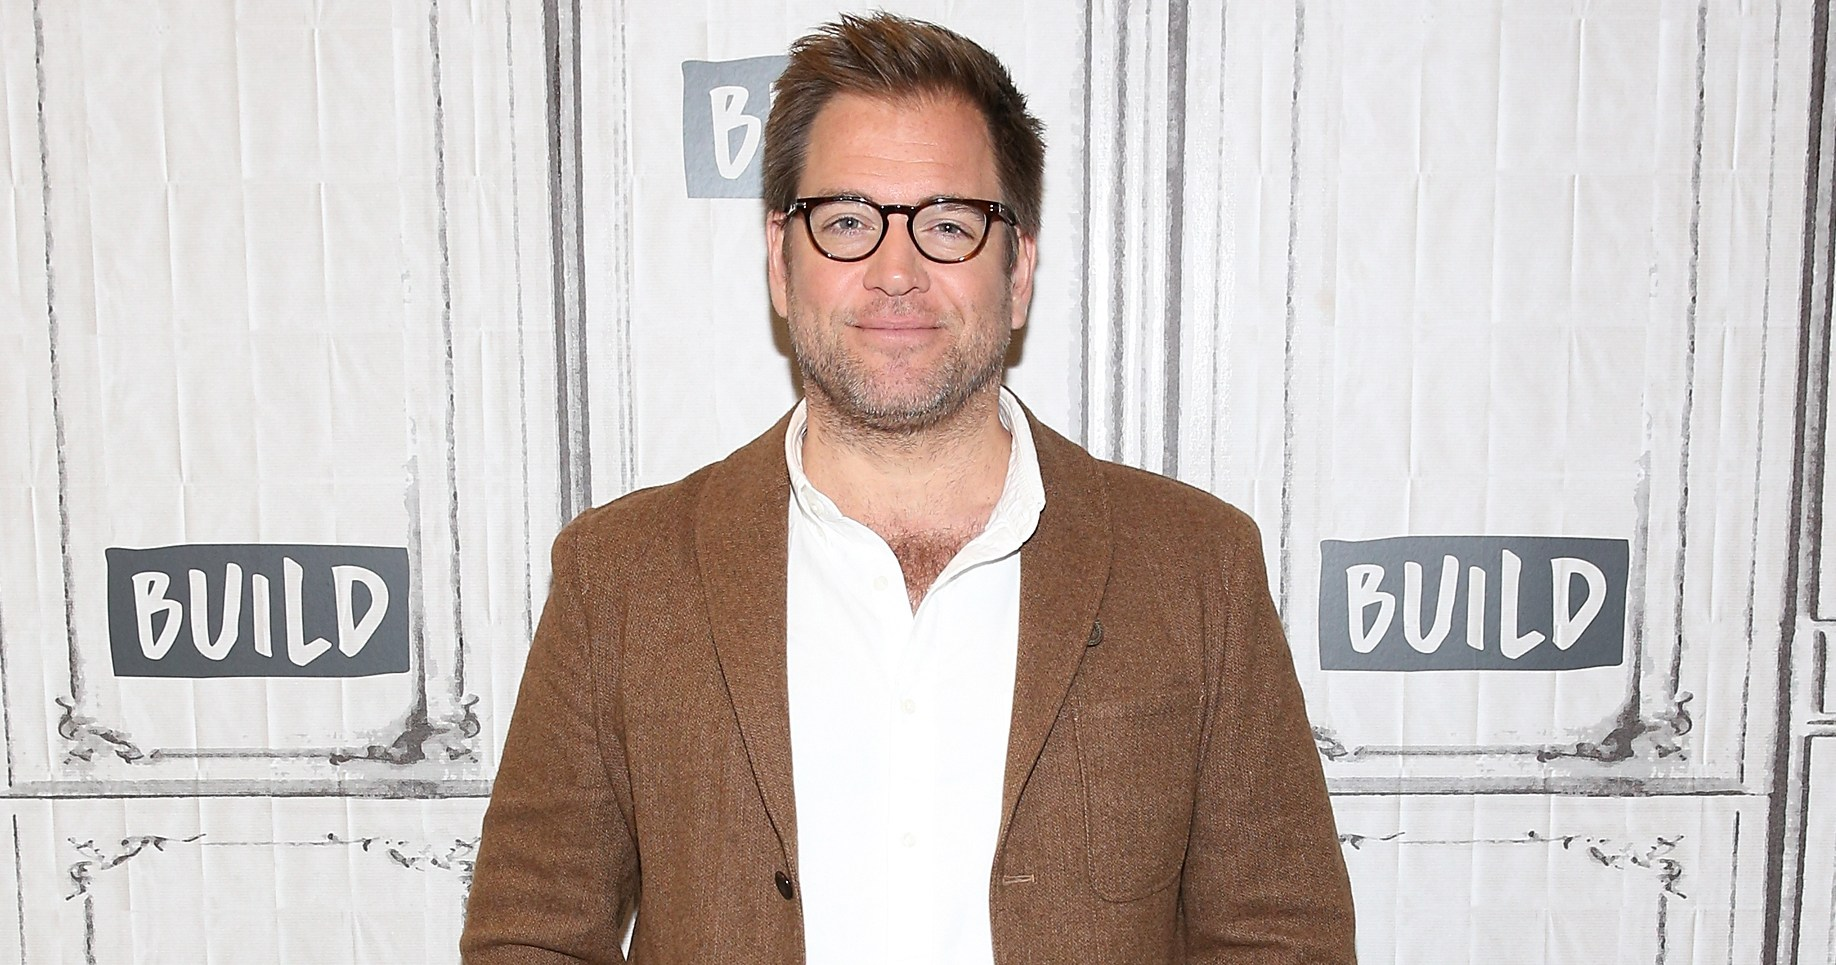 Stars Defend Michael Weatherly After Eliza Dushku's Sexual Misconduct Claim